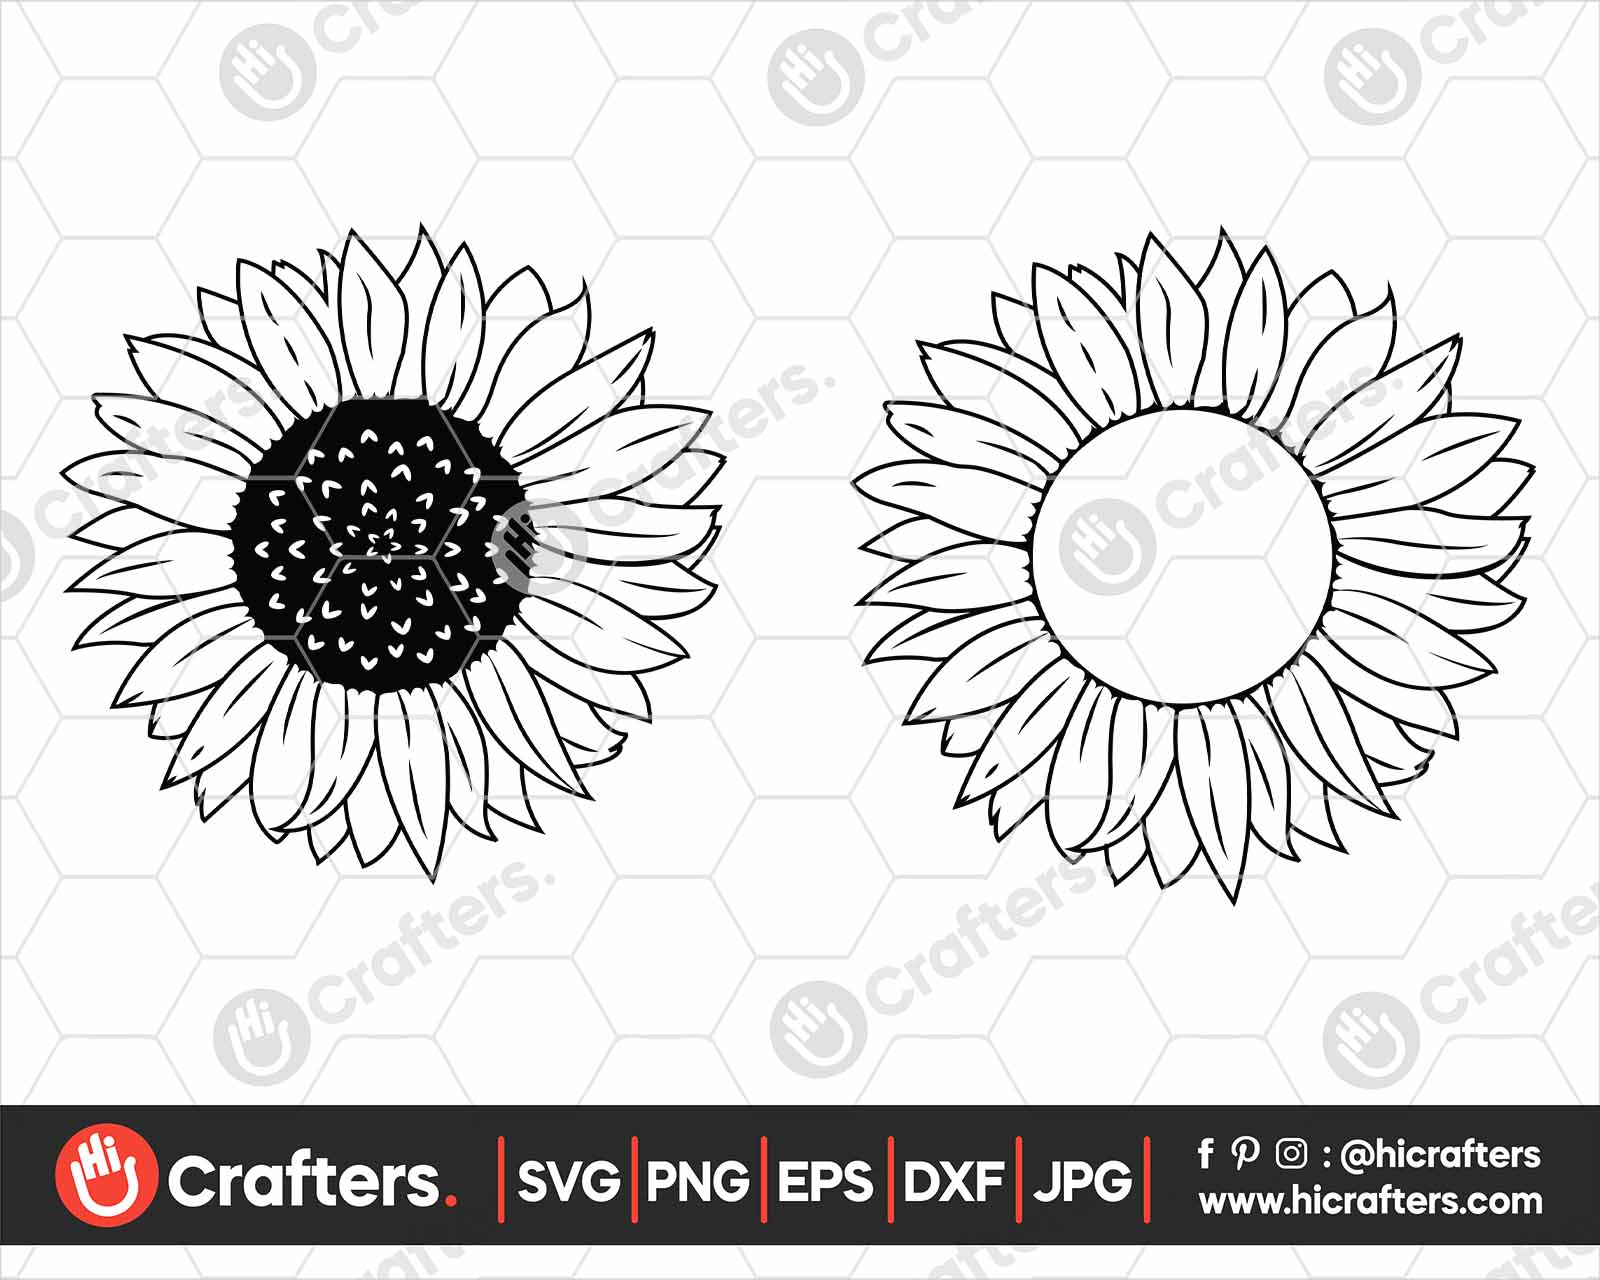 Sunflower Monogram Svg Sunflower Silhouette Svg Png Hi Crafters